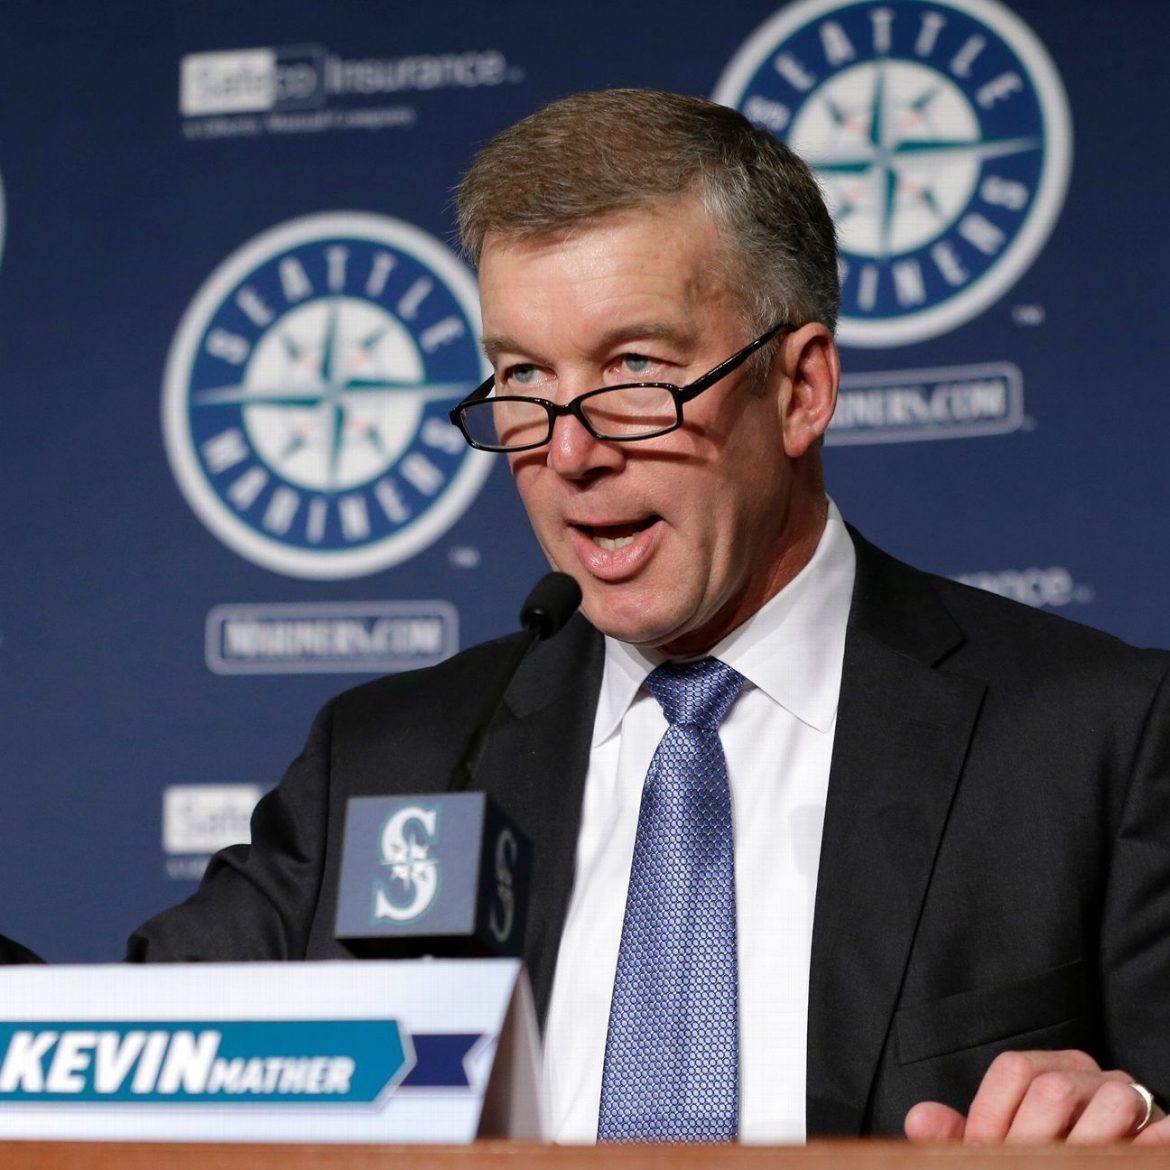 Mariners president/CEO resigns after comments